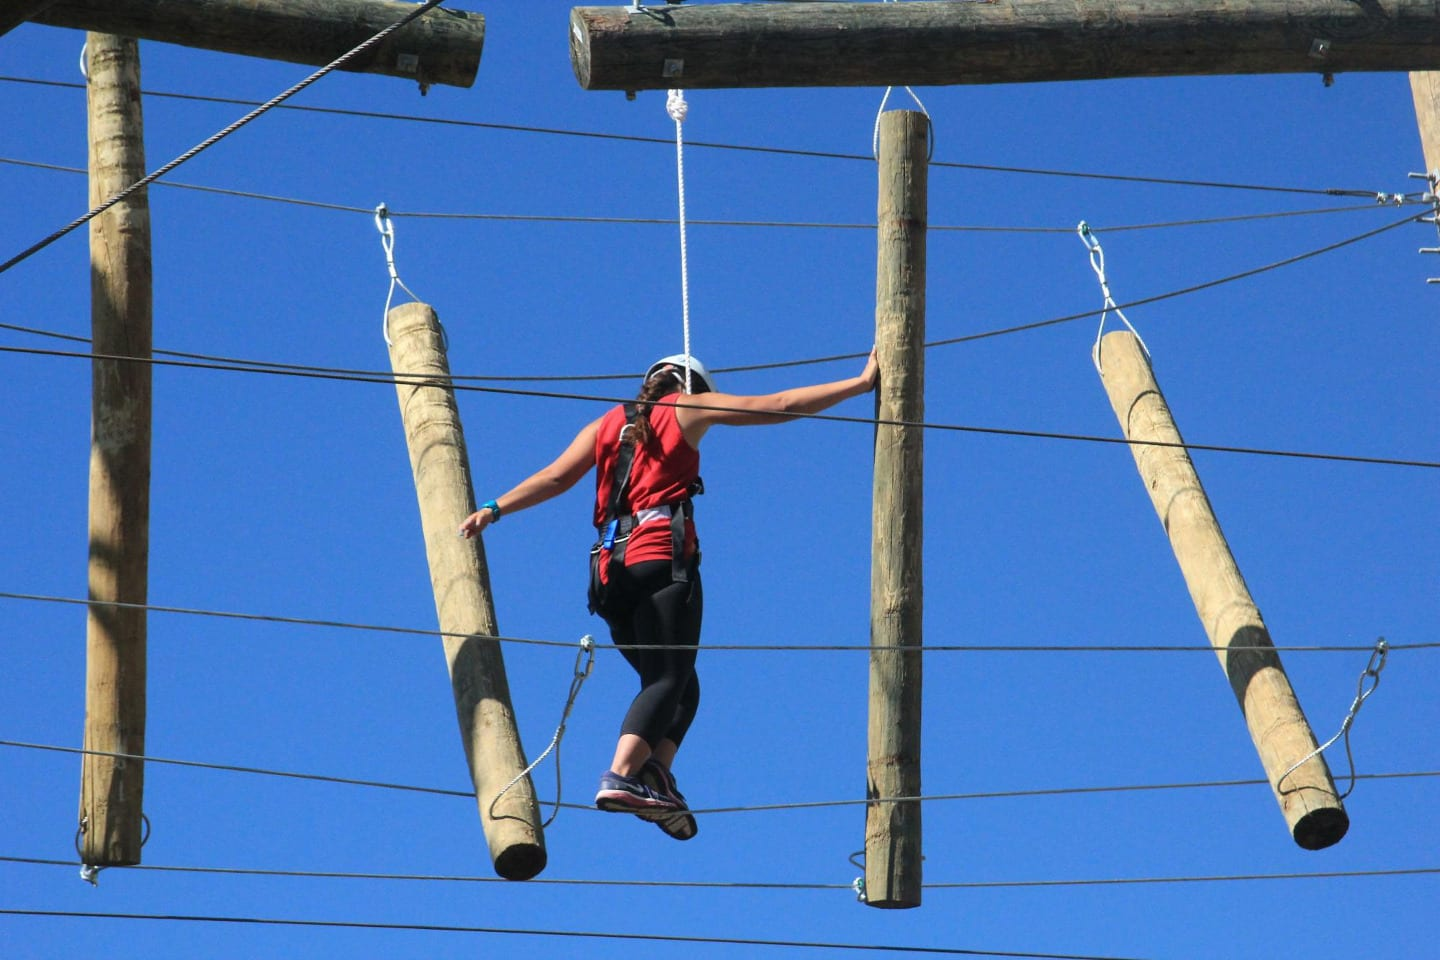 Browns Canyon Adventure Park Rope Cross